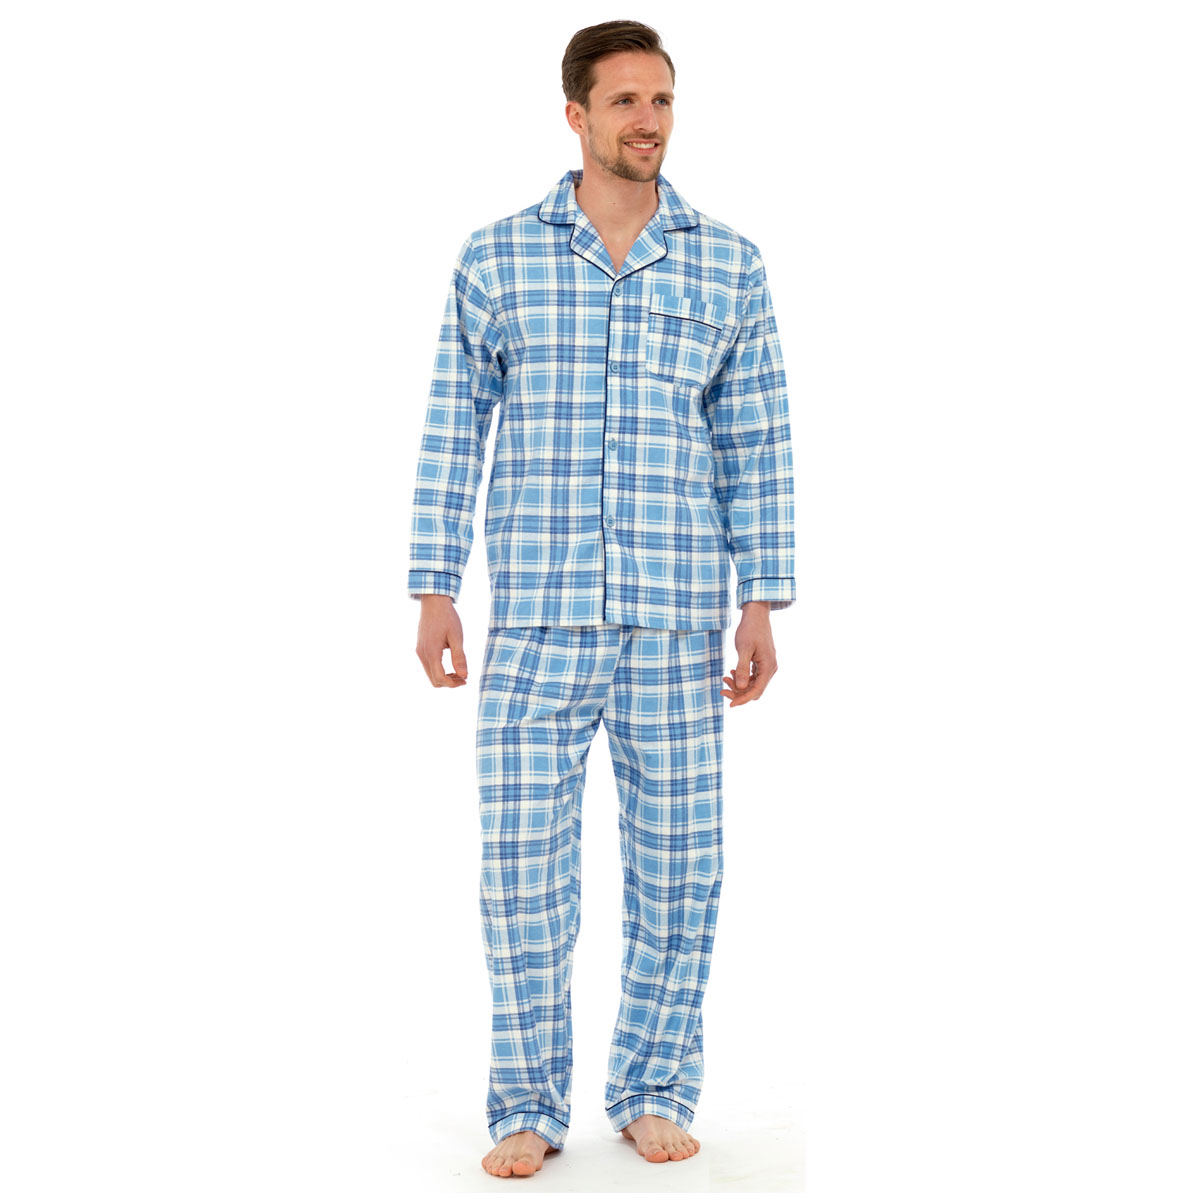 Best Sellers in Men's Pajama Sets #1. GLOBAL Men's Pyjamas % Cotton Comfortable Fleece Sleepwear Long-Sleeve top and Bottom Flannel Pajamas Set out of 5 stars in MEN'S PAJAMA SETS ‹ Any Department ‹ Clothing, Shoes & Jewelry ‹ Men ‹.